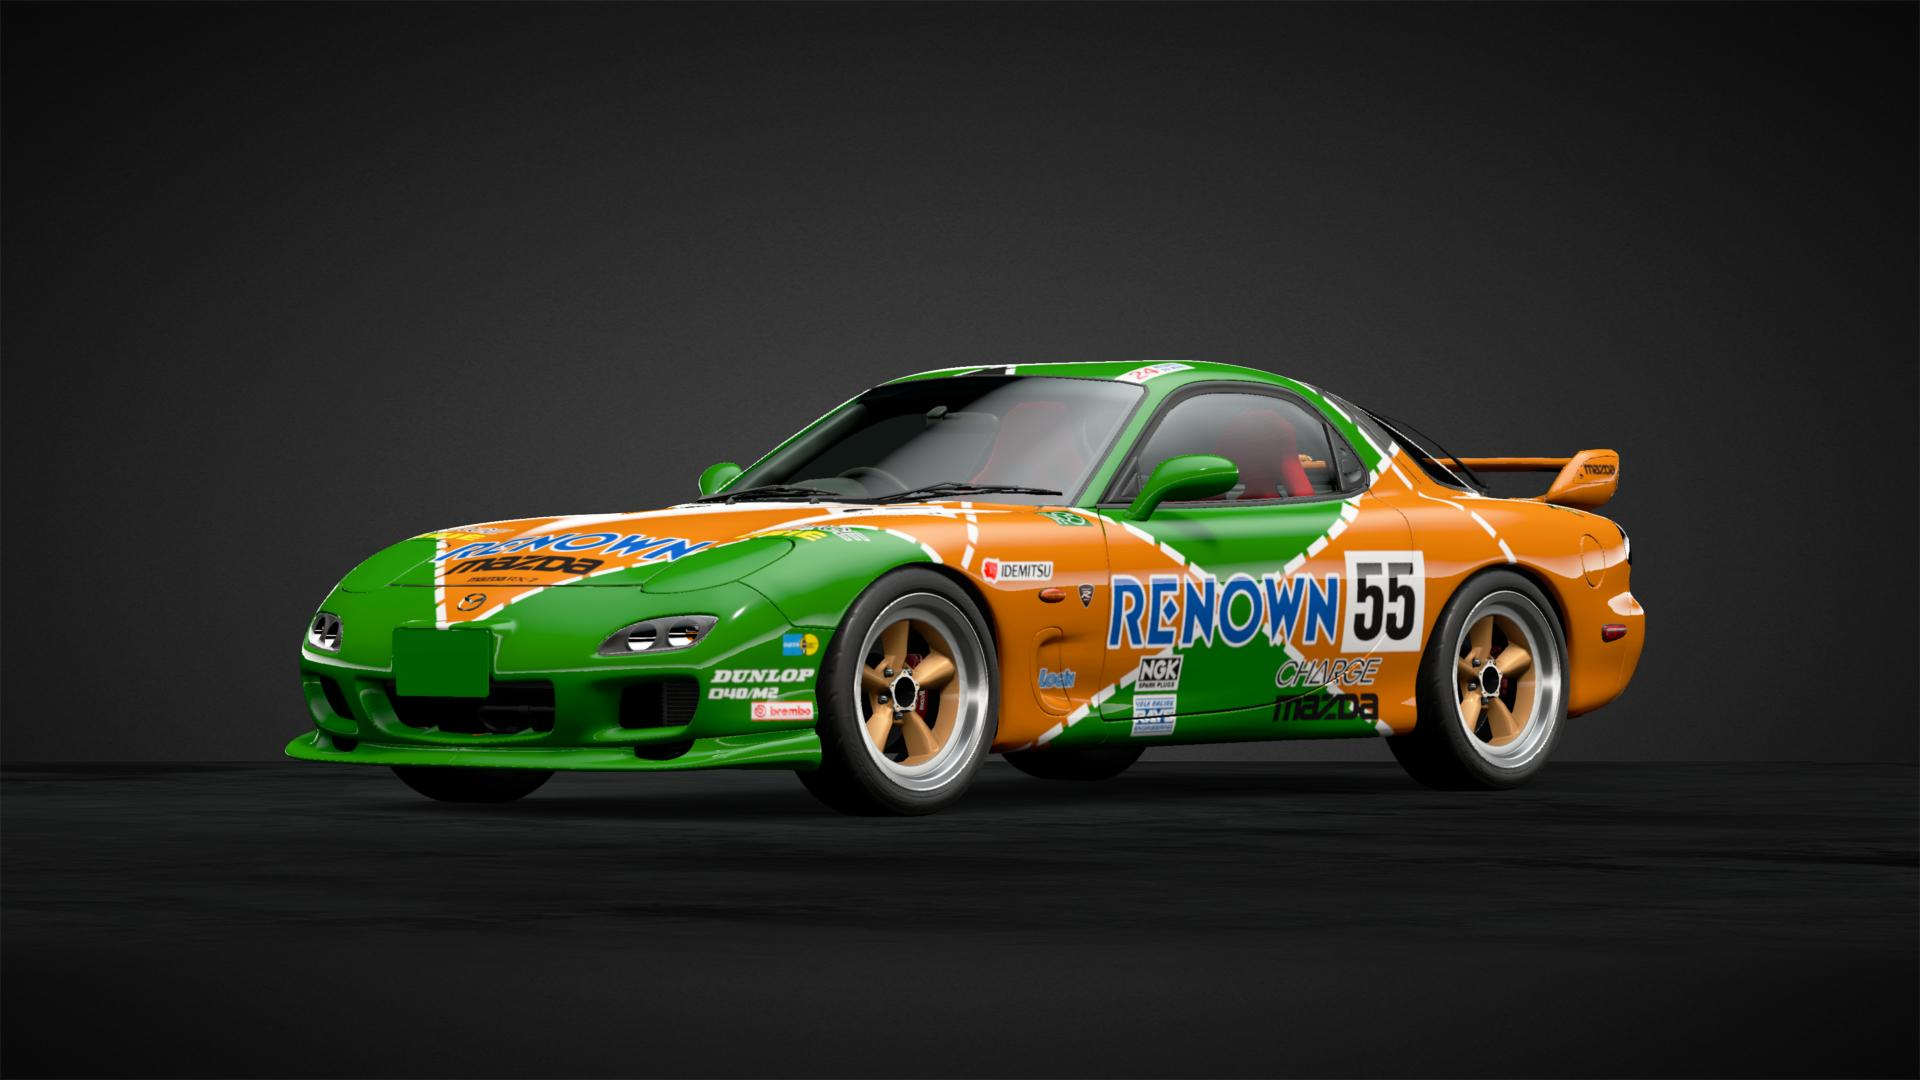 Rx 7 Renown 787b Tribute Car Livery By Cytoria